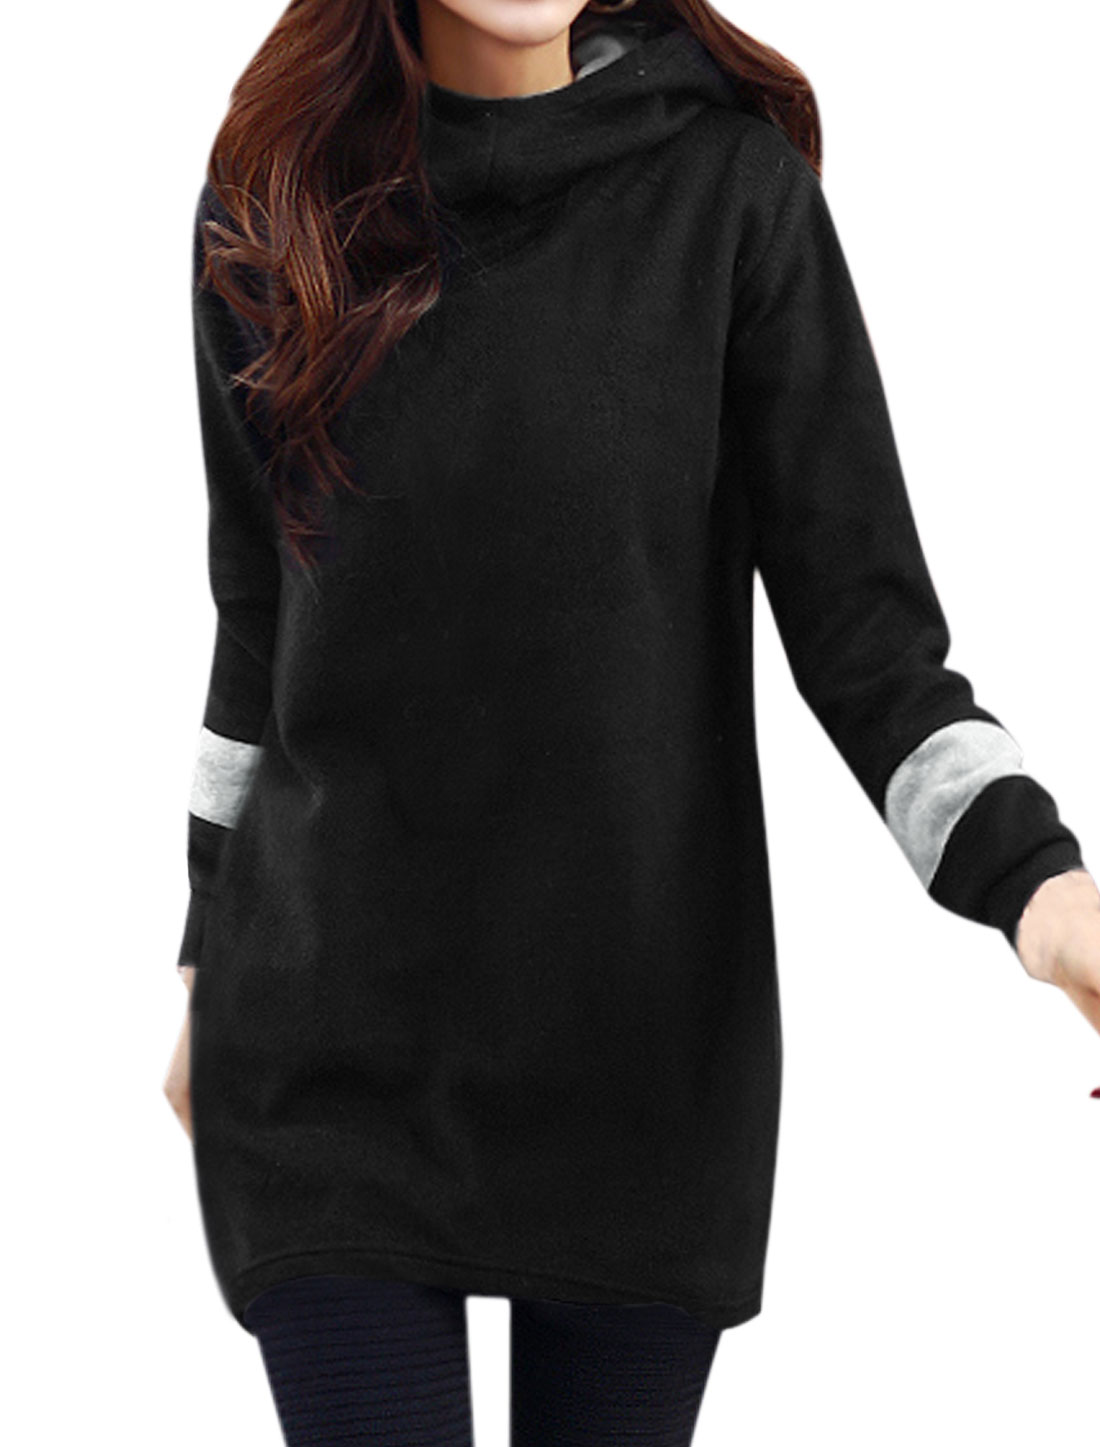 Woman Hooded Long Sleeves Tunic Sweatshirt Dress Black S